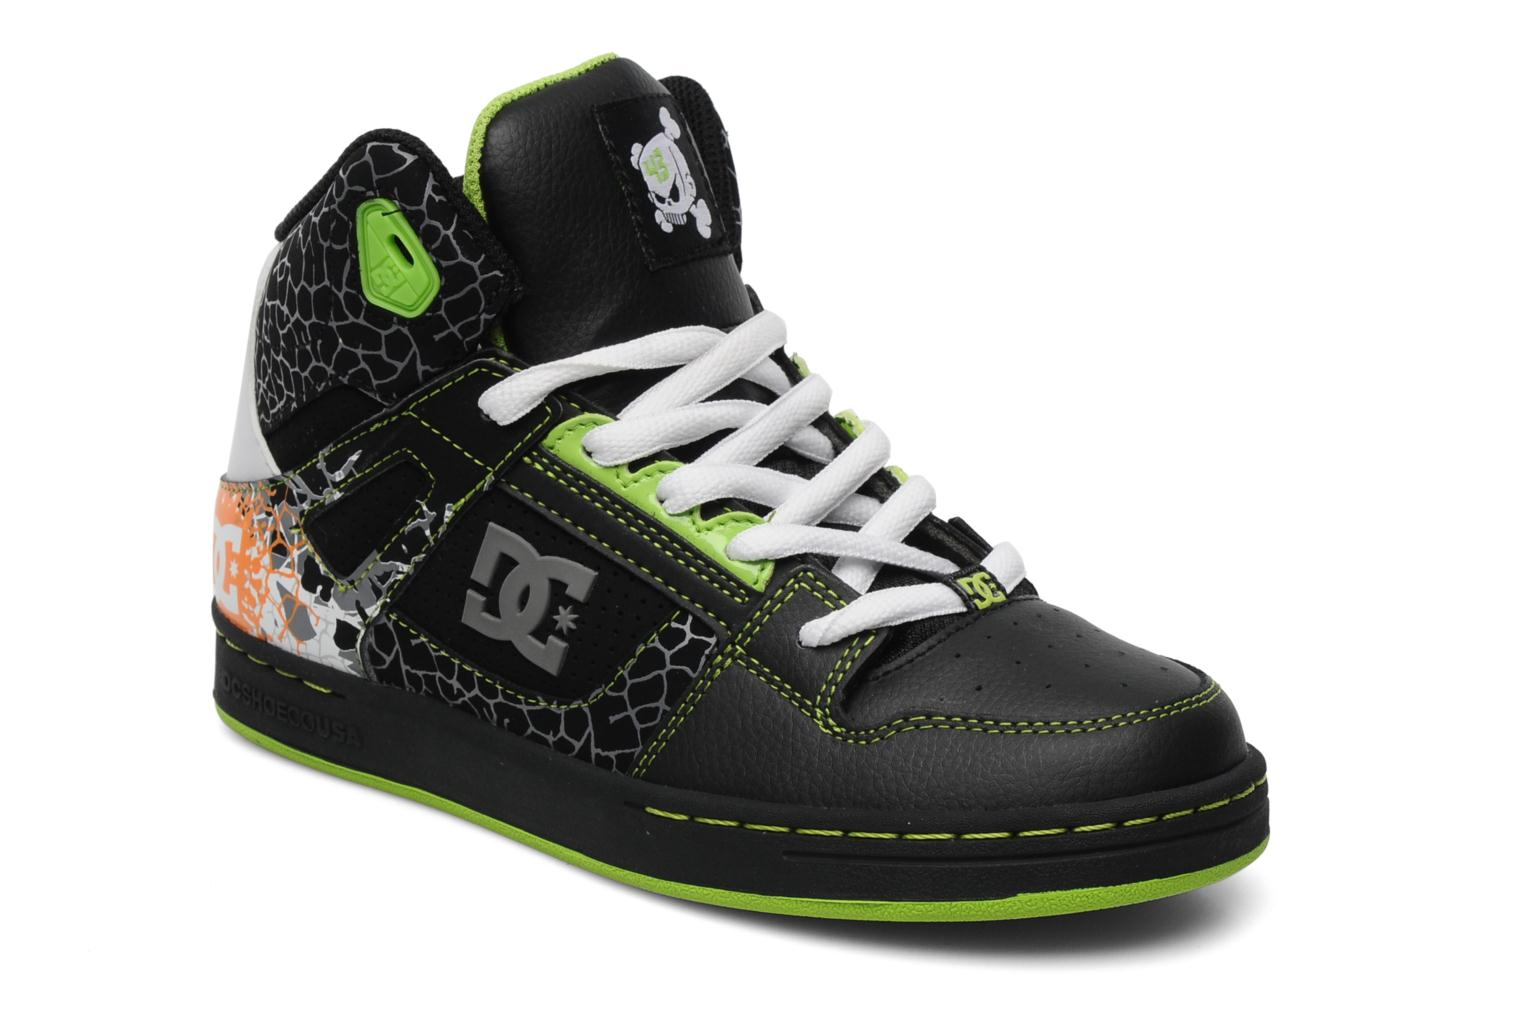 dc shoes ken block rebound sport shoes in black at sarenza. Black Bedroom Furniture Sets. Home Design Ideas